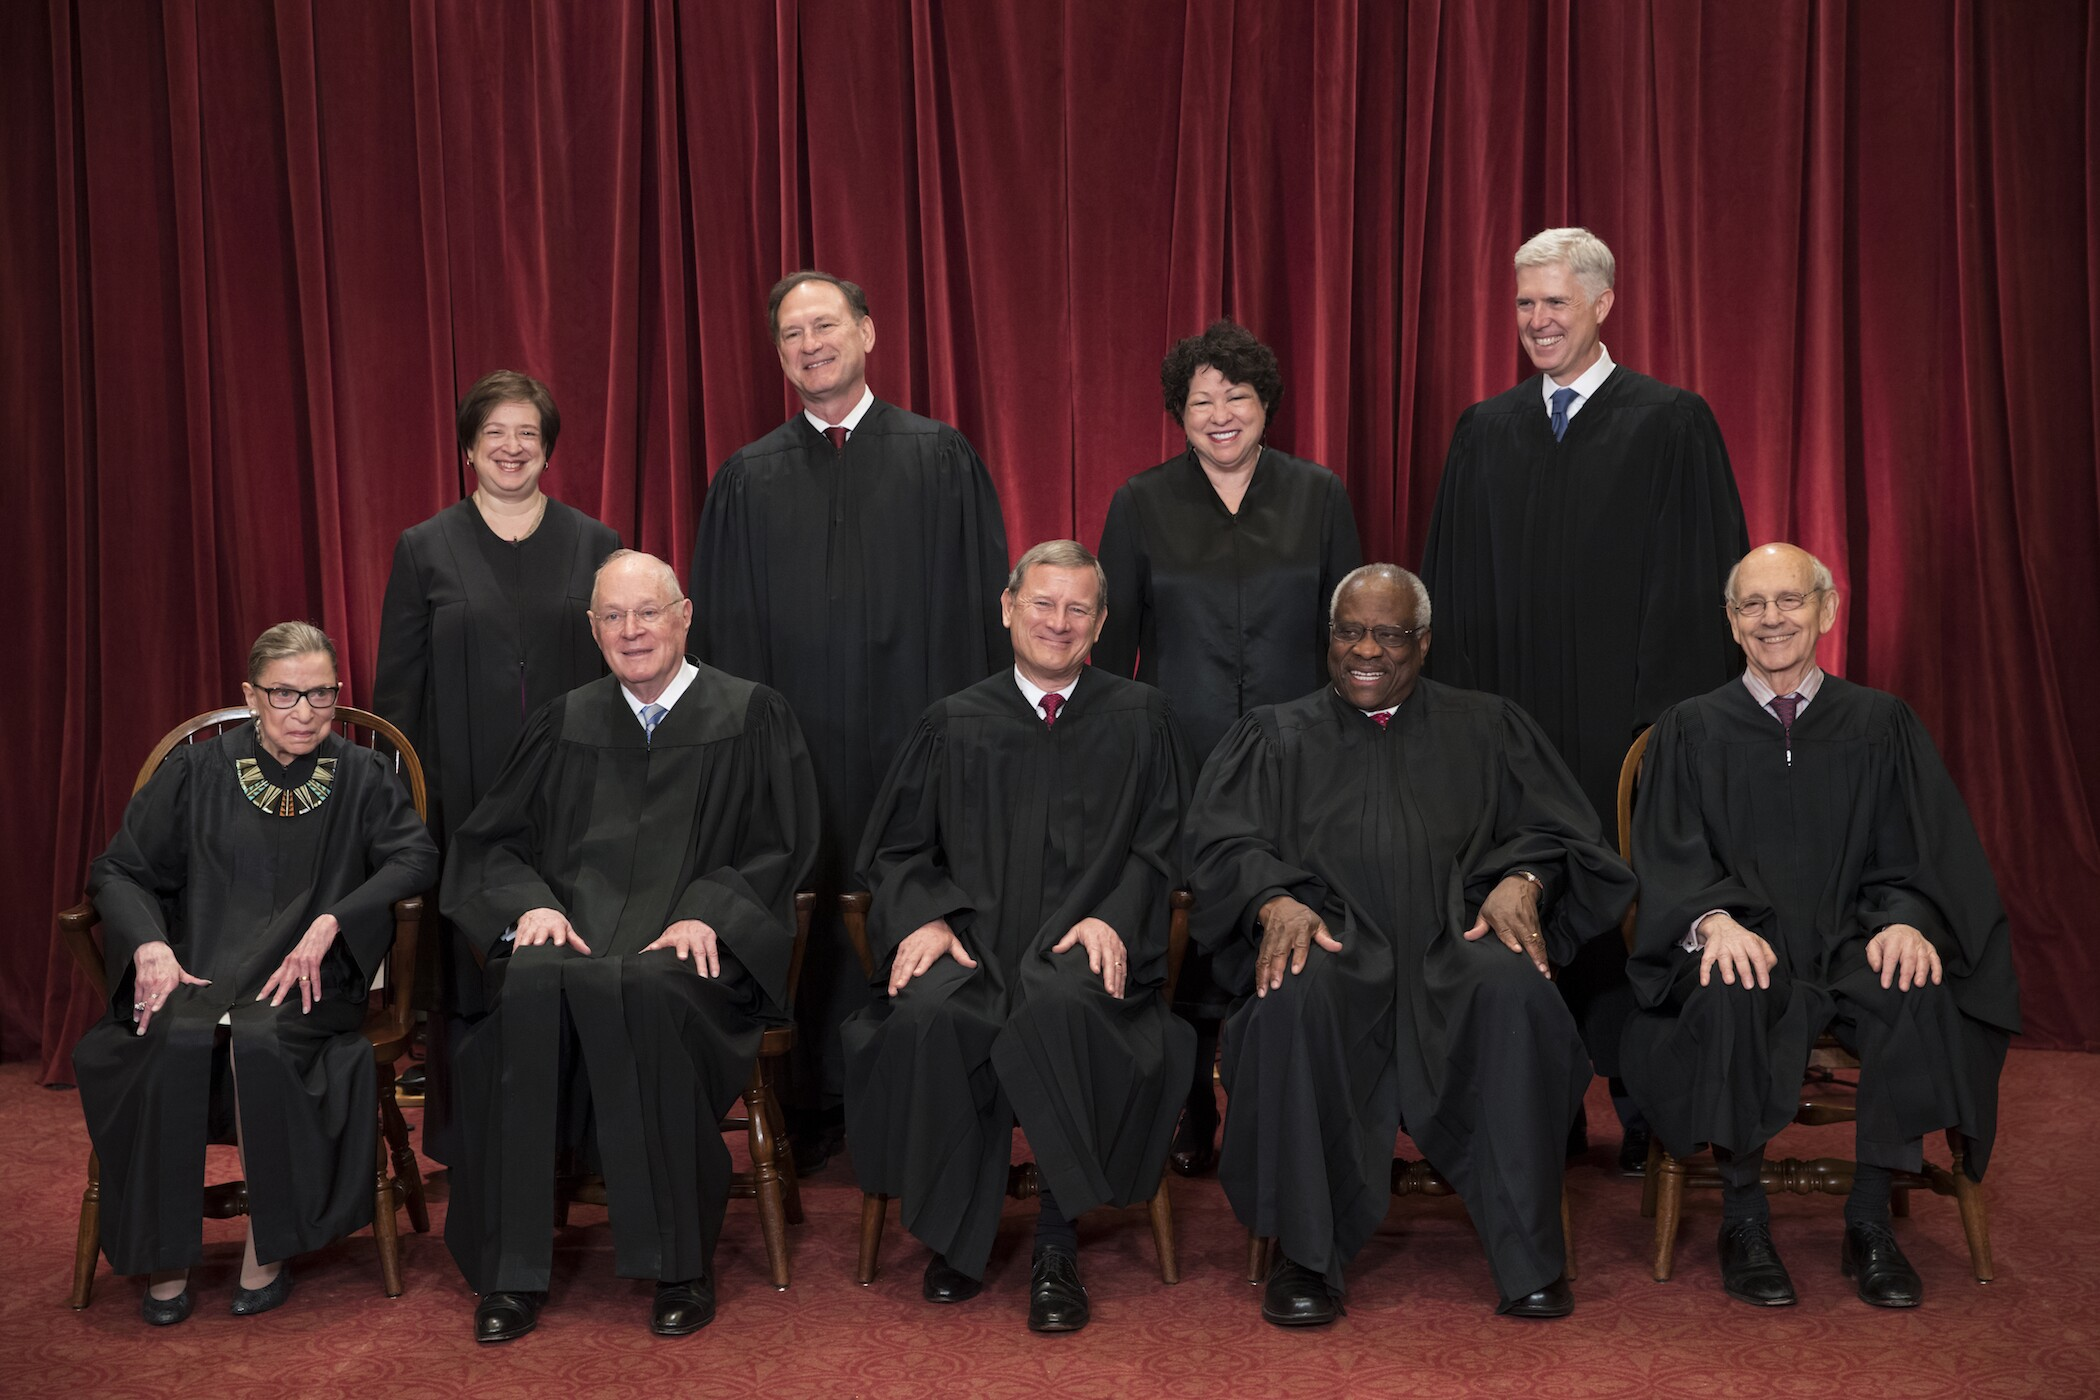 Image result for photo of the supreme court